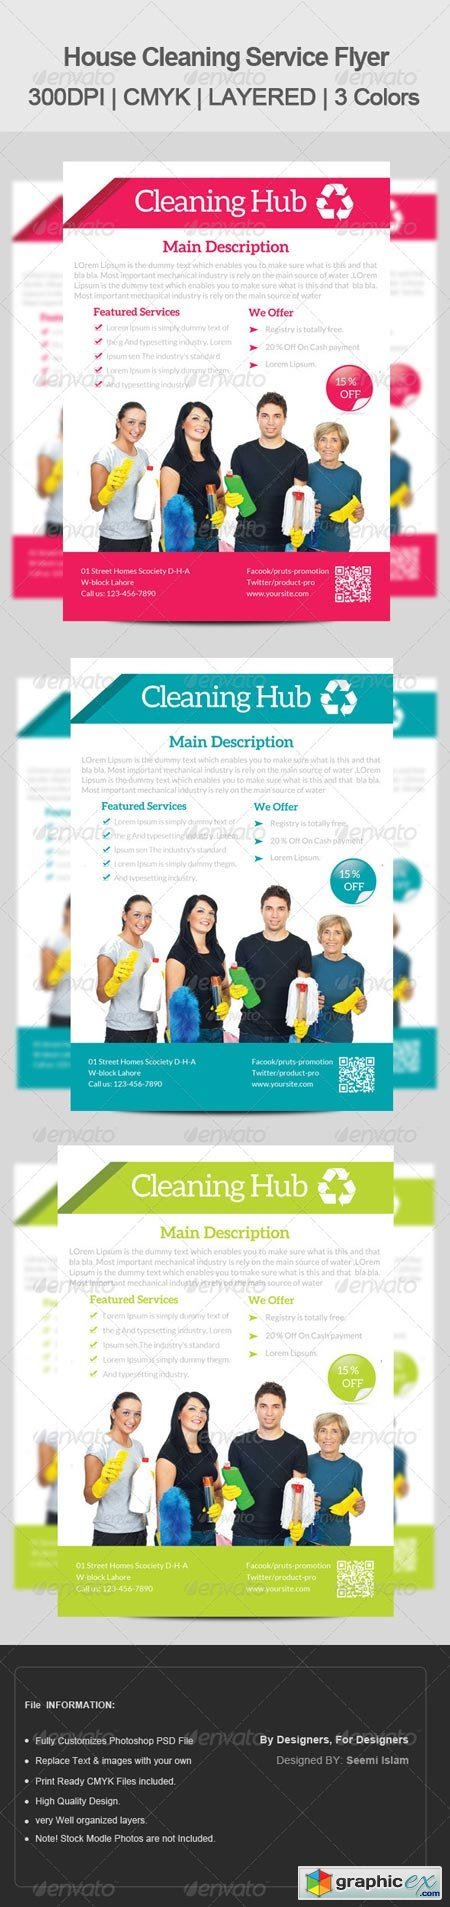 House Cleaning Services Flyer Template 6680889